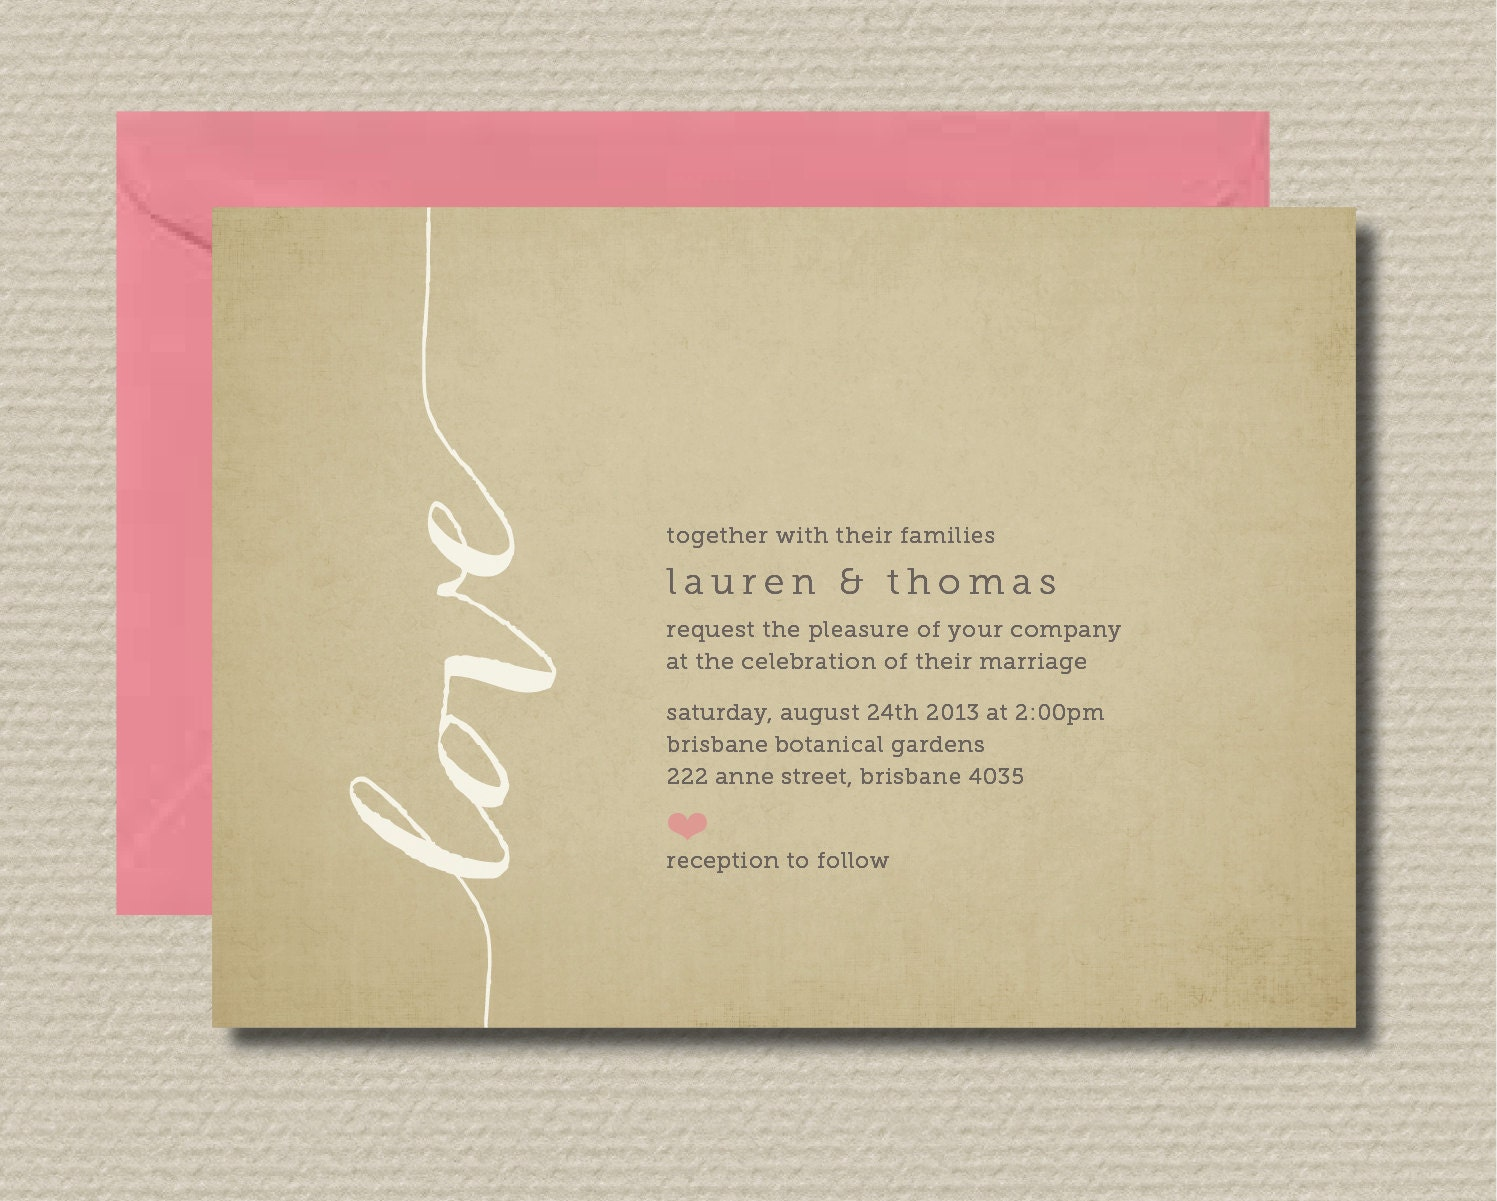 Wedding invitation wording wedding invitation wording for Destination wedding invitation rsvp etiquette